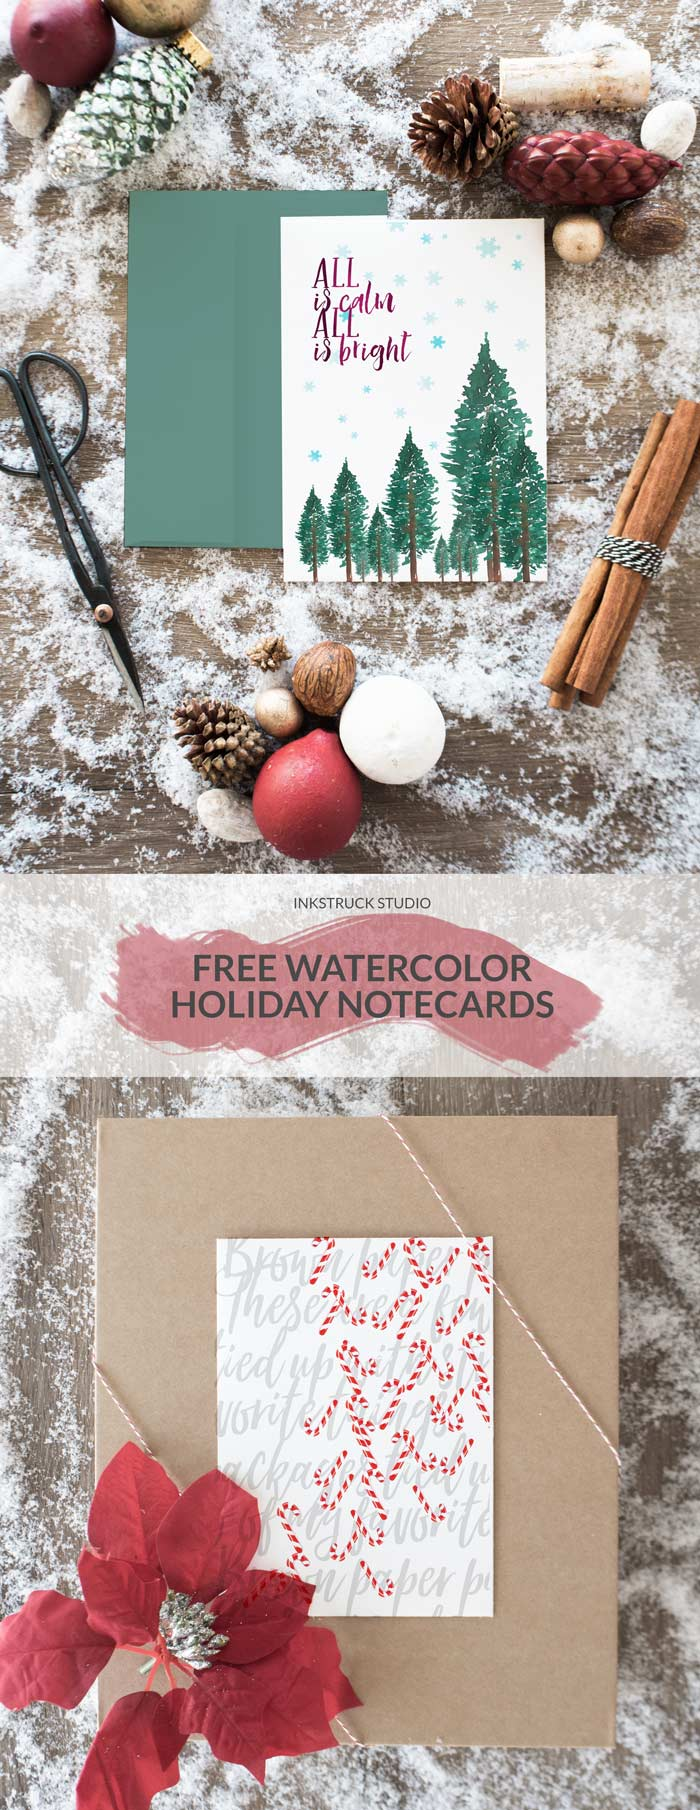 Need a freebie for the holidays? These watercolor holiday notecards perfect to download and print. - Inkstruck Studio